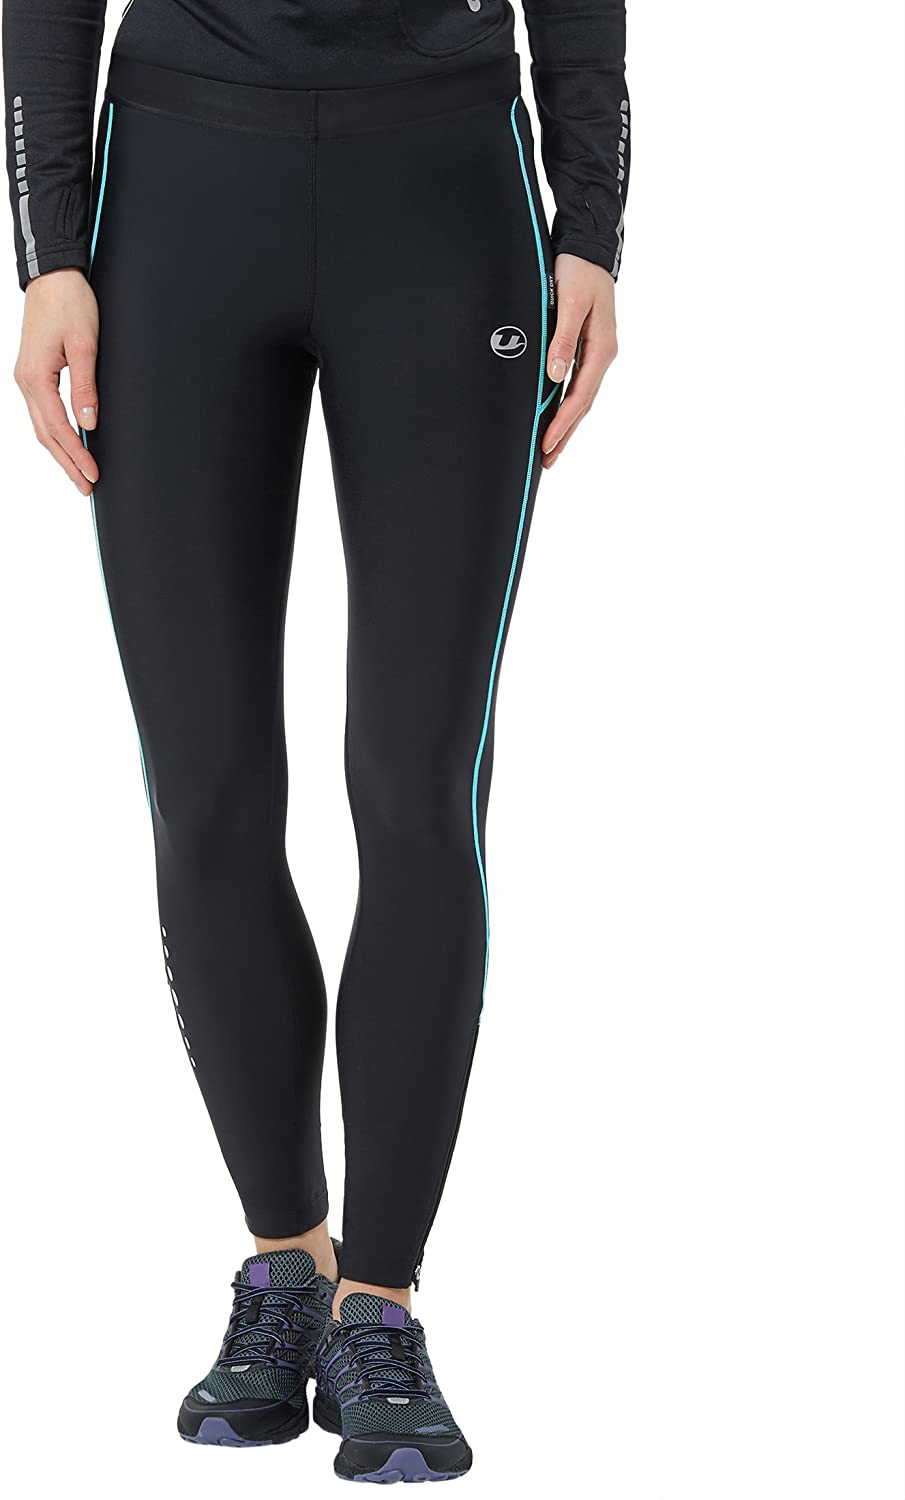 Ultega Women's Long Running Pants with Compression Effect and Quick-Dry-Function